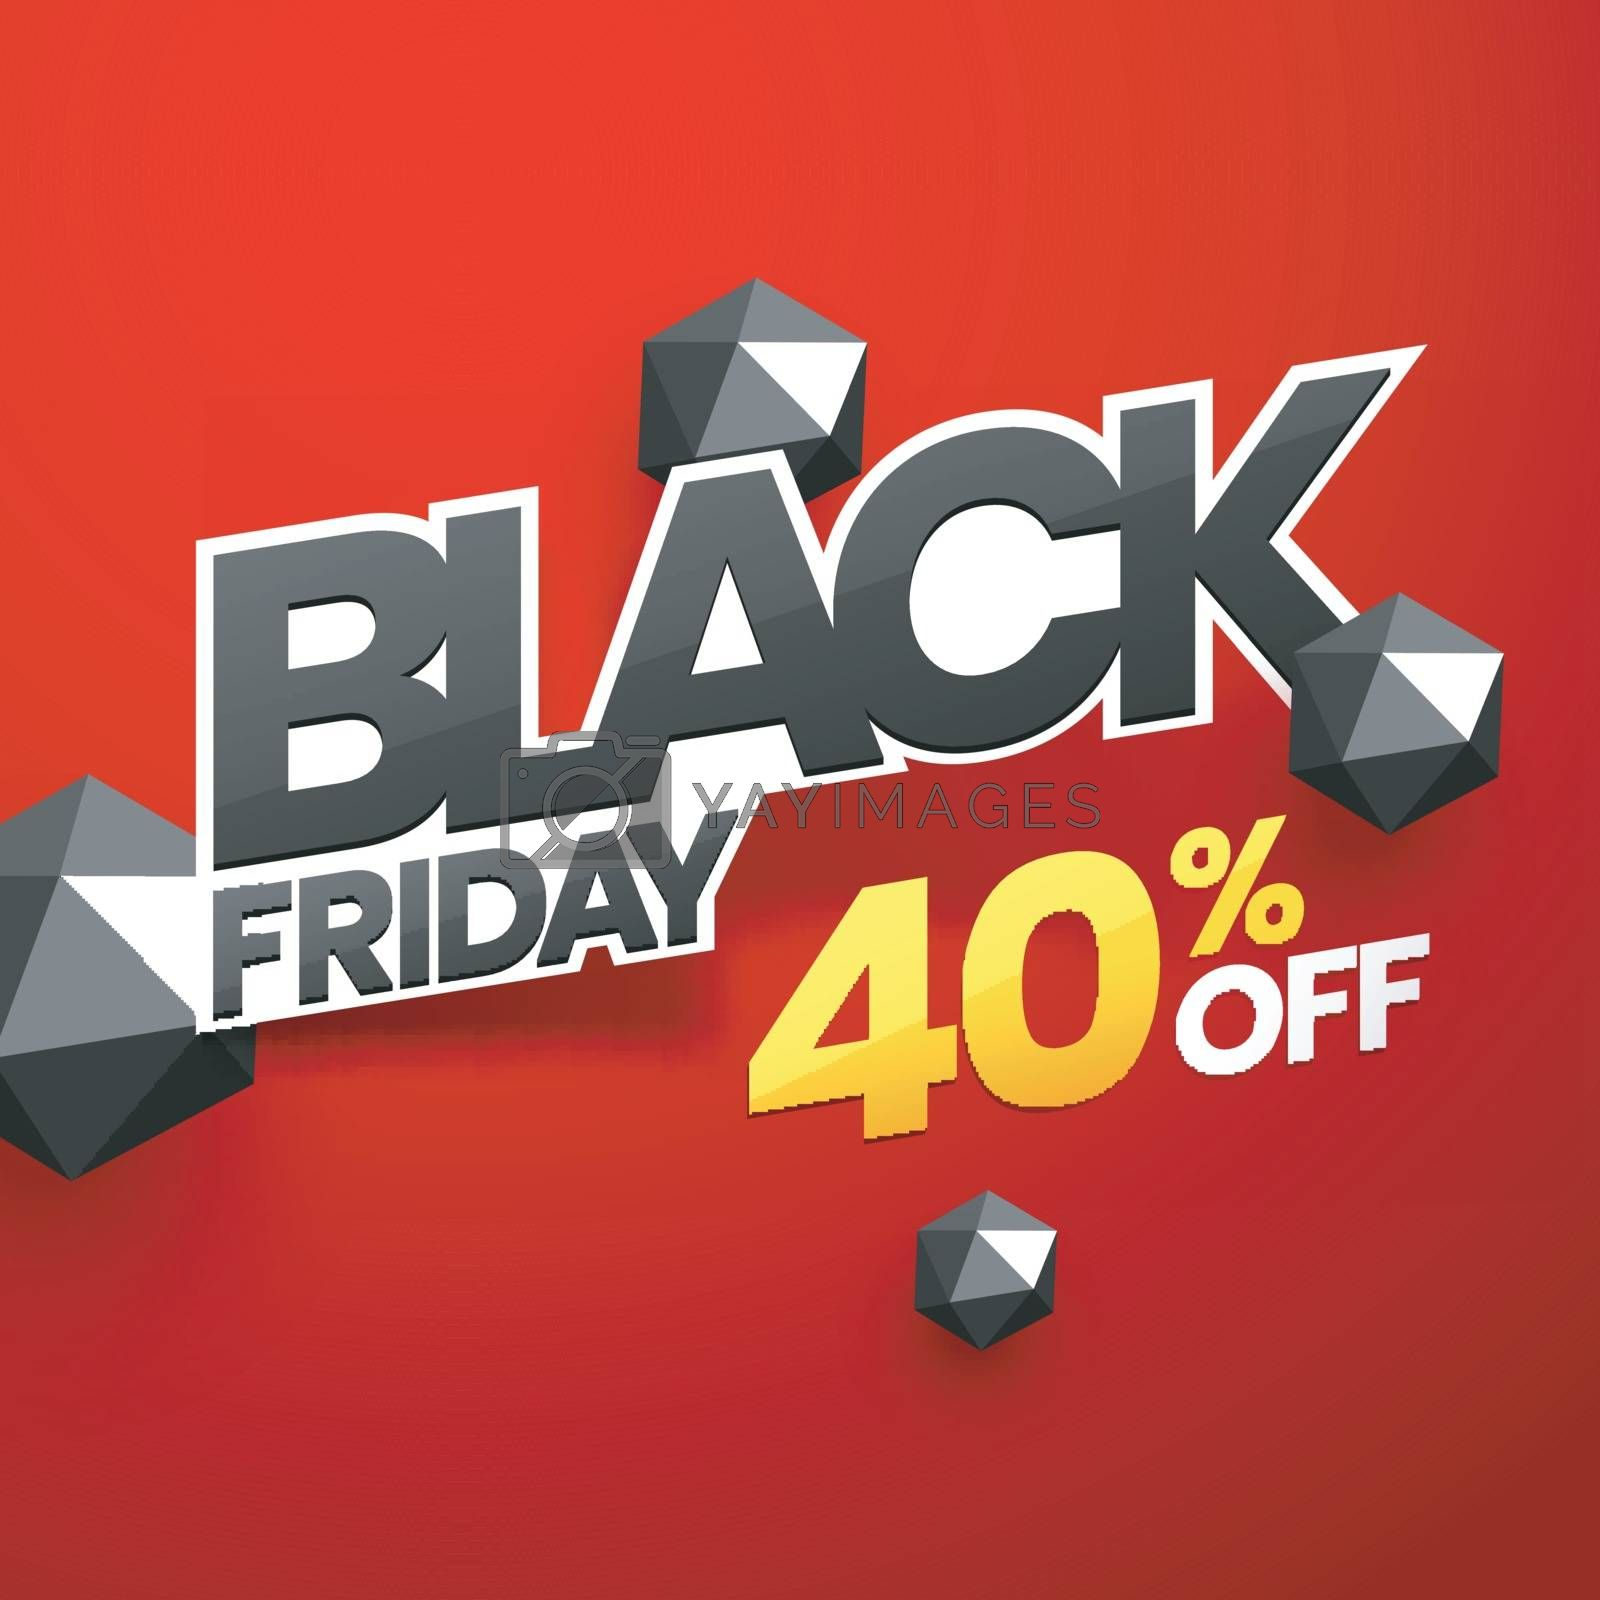 Black Friday poster design with 40% discount offer and 3d abstra by aispl